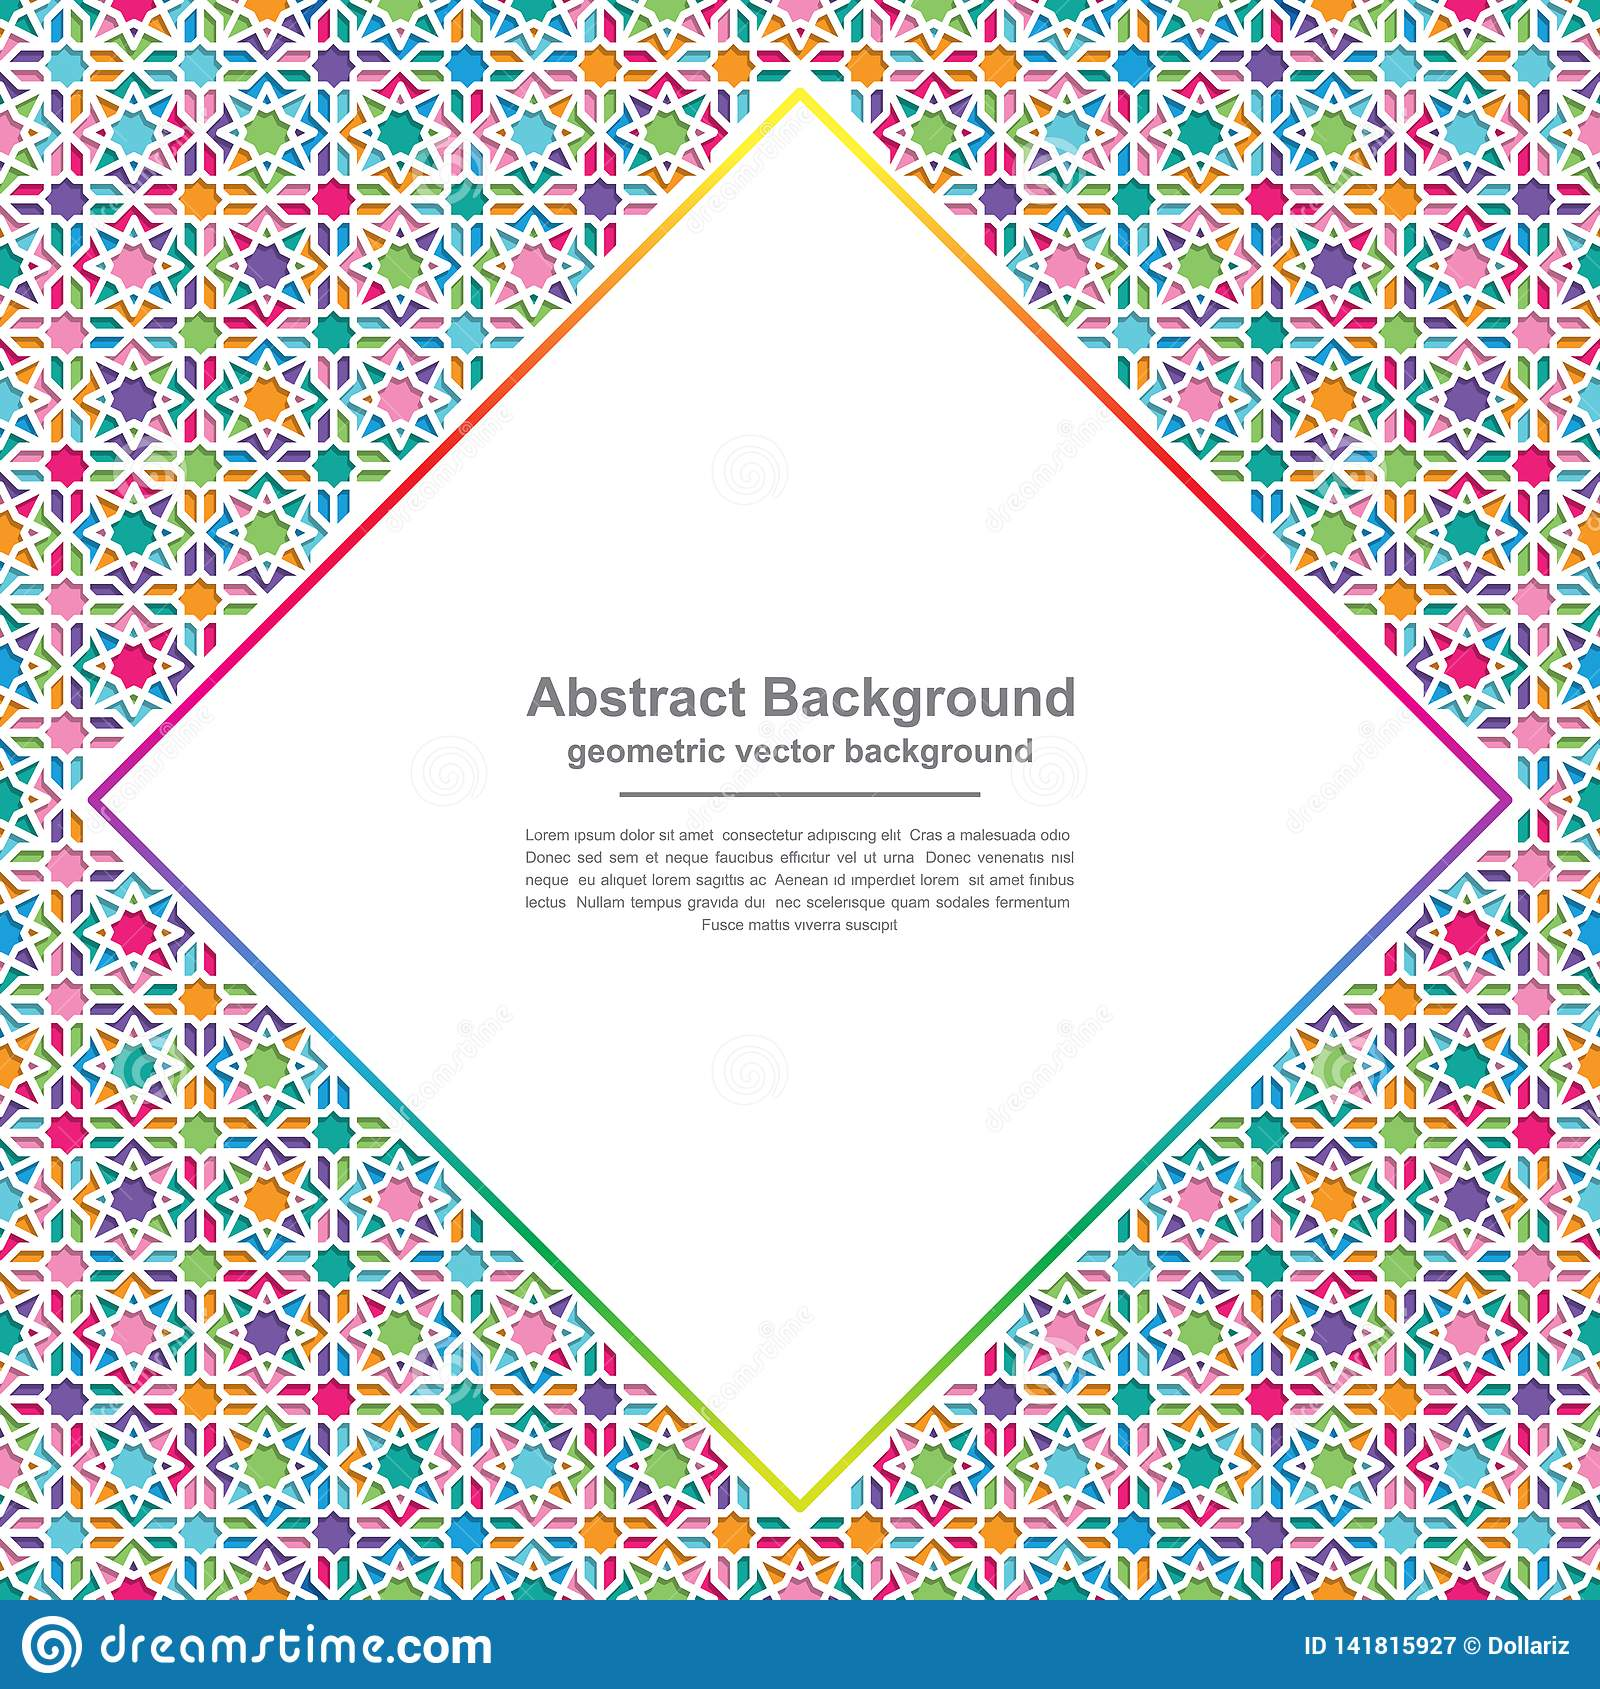 Geometry backgrounds with modern colorful combinations with blank spaces in the middle for your text. Eps10 vector background